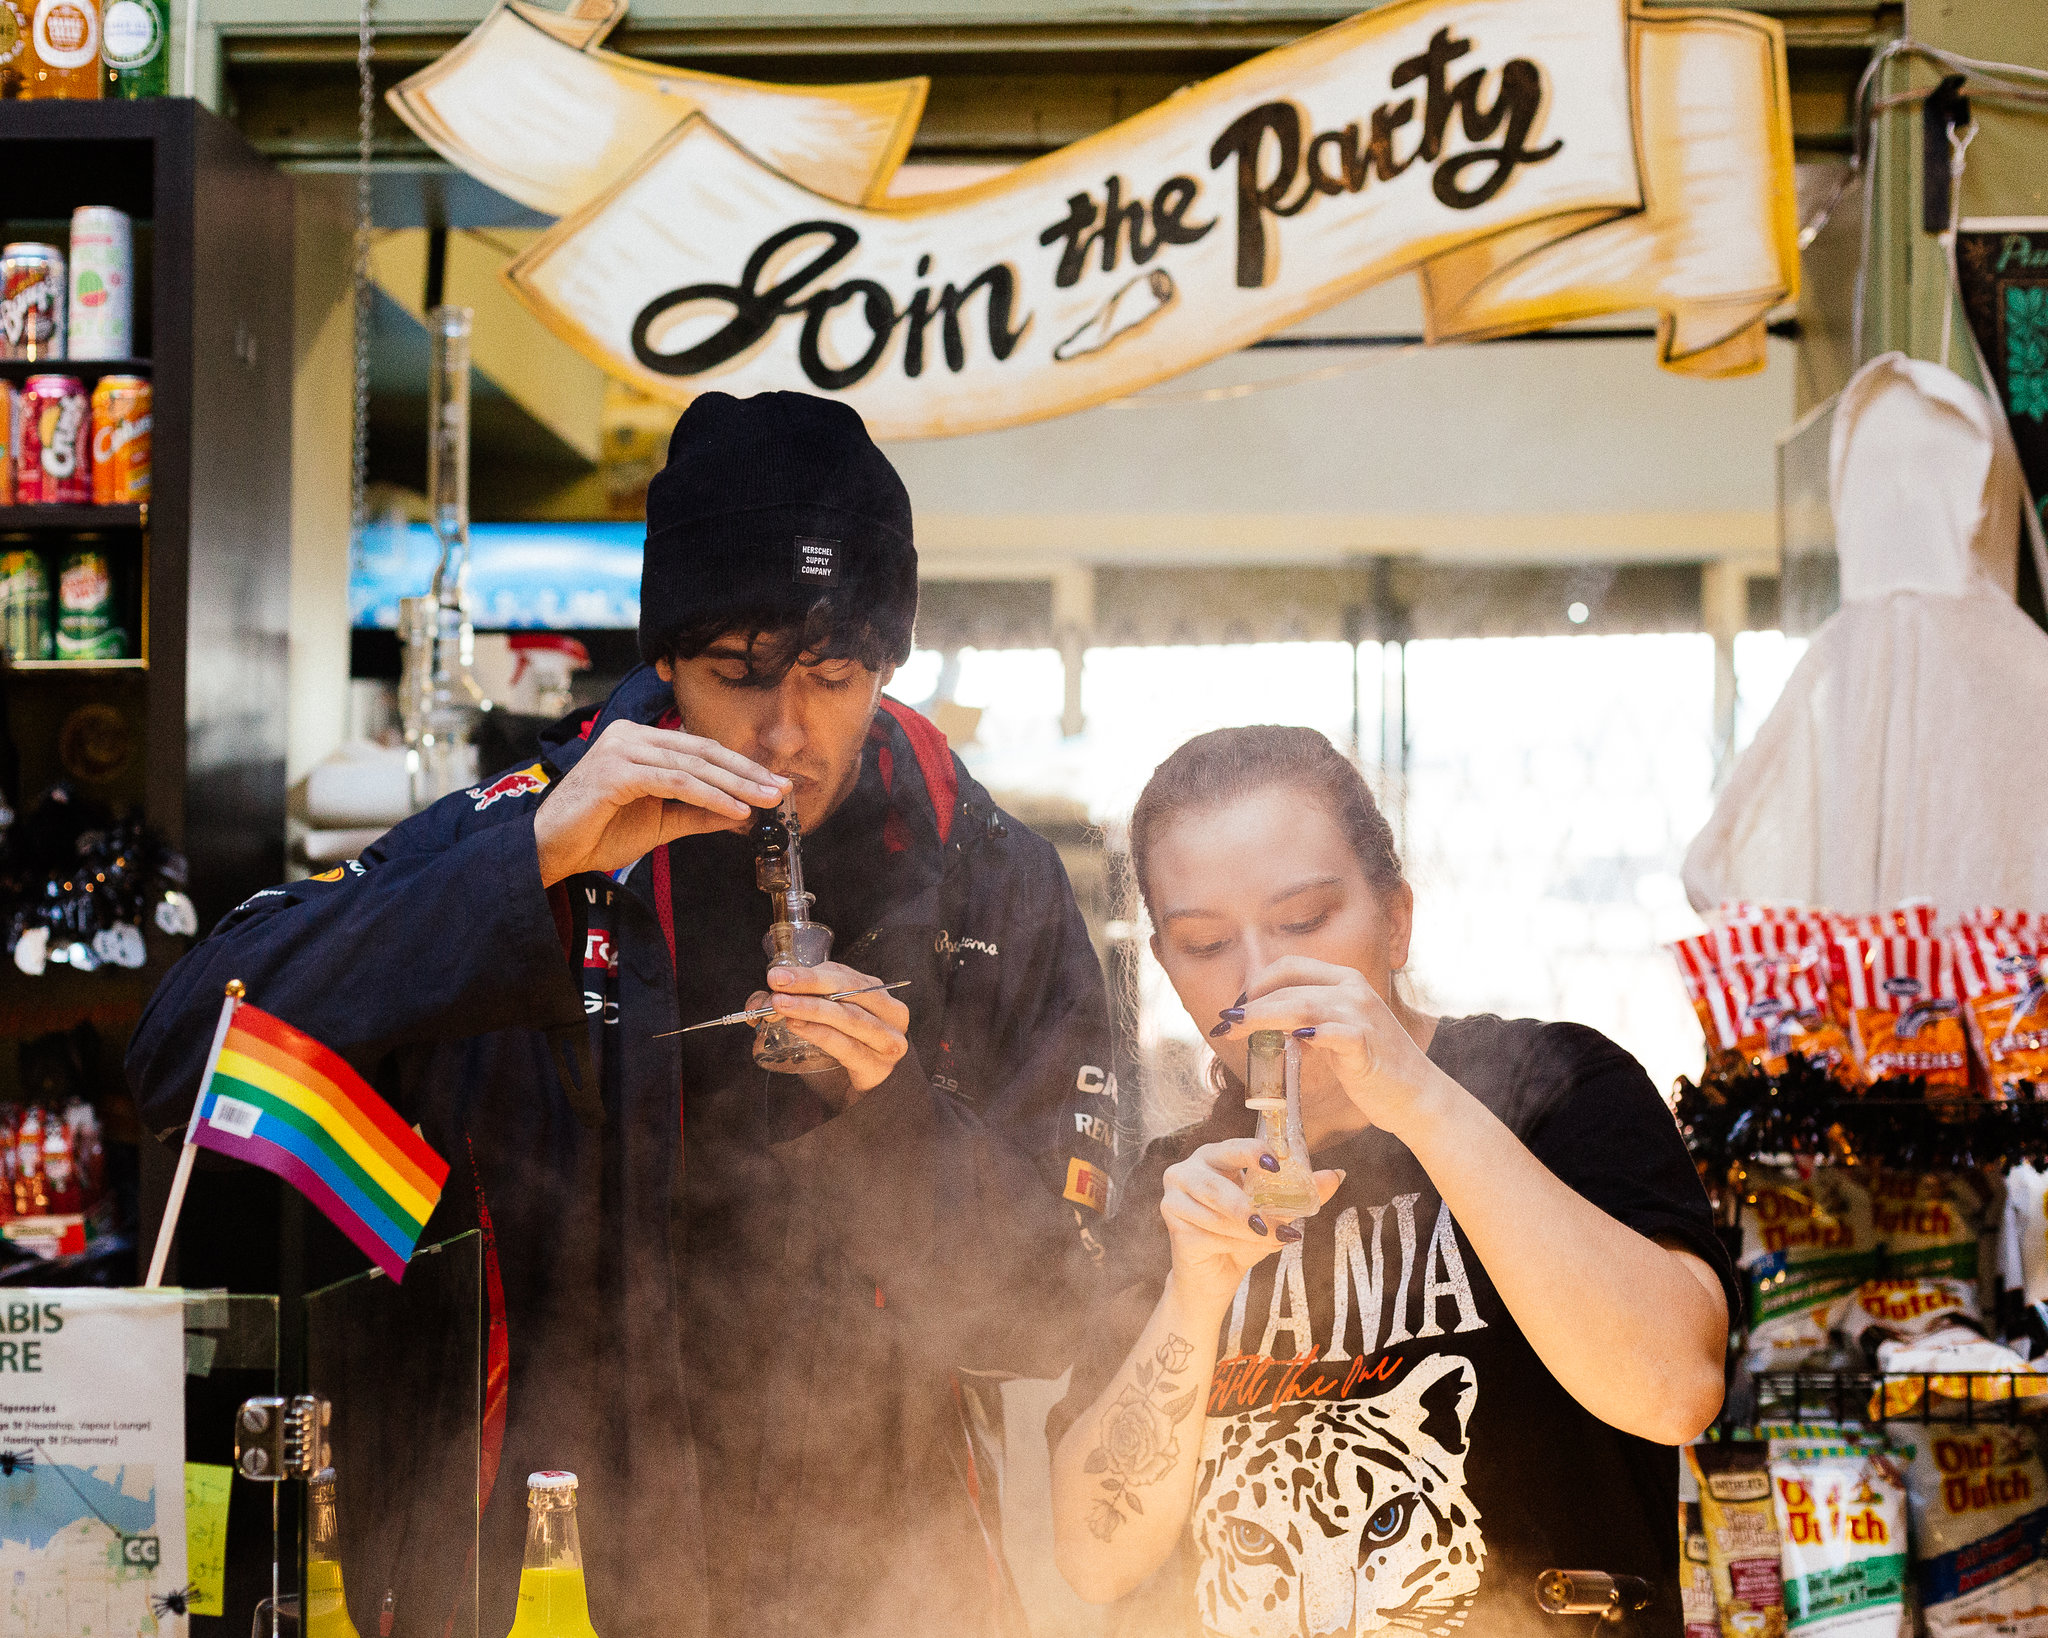 People smoking pot at a store in Vancouver, British Columbia. Licensed cannabis growers have been rushing for months to get a foothold in what is expected to be a $5 billion industry by 2020. Credit: Alana Paterson for The New York Times